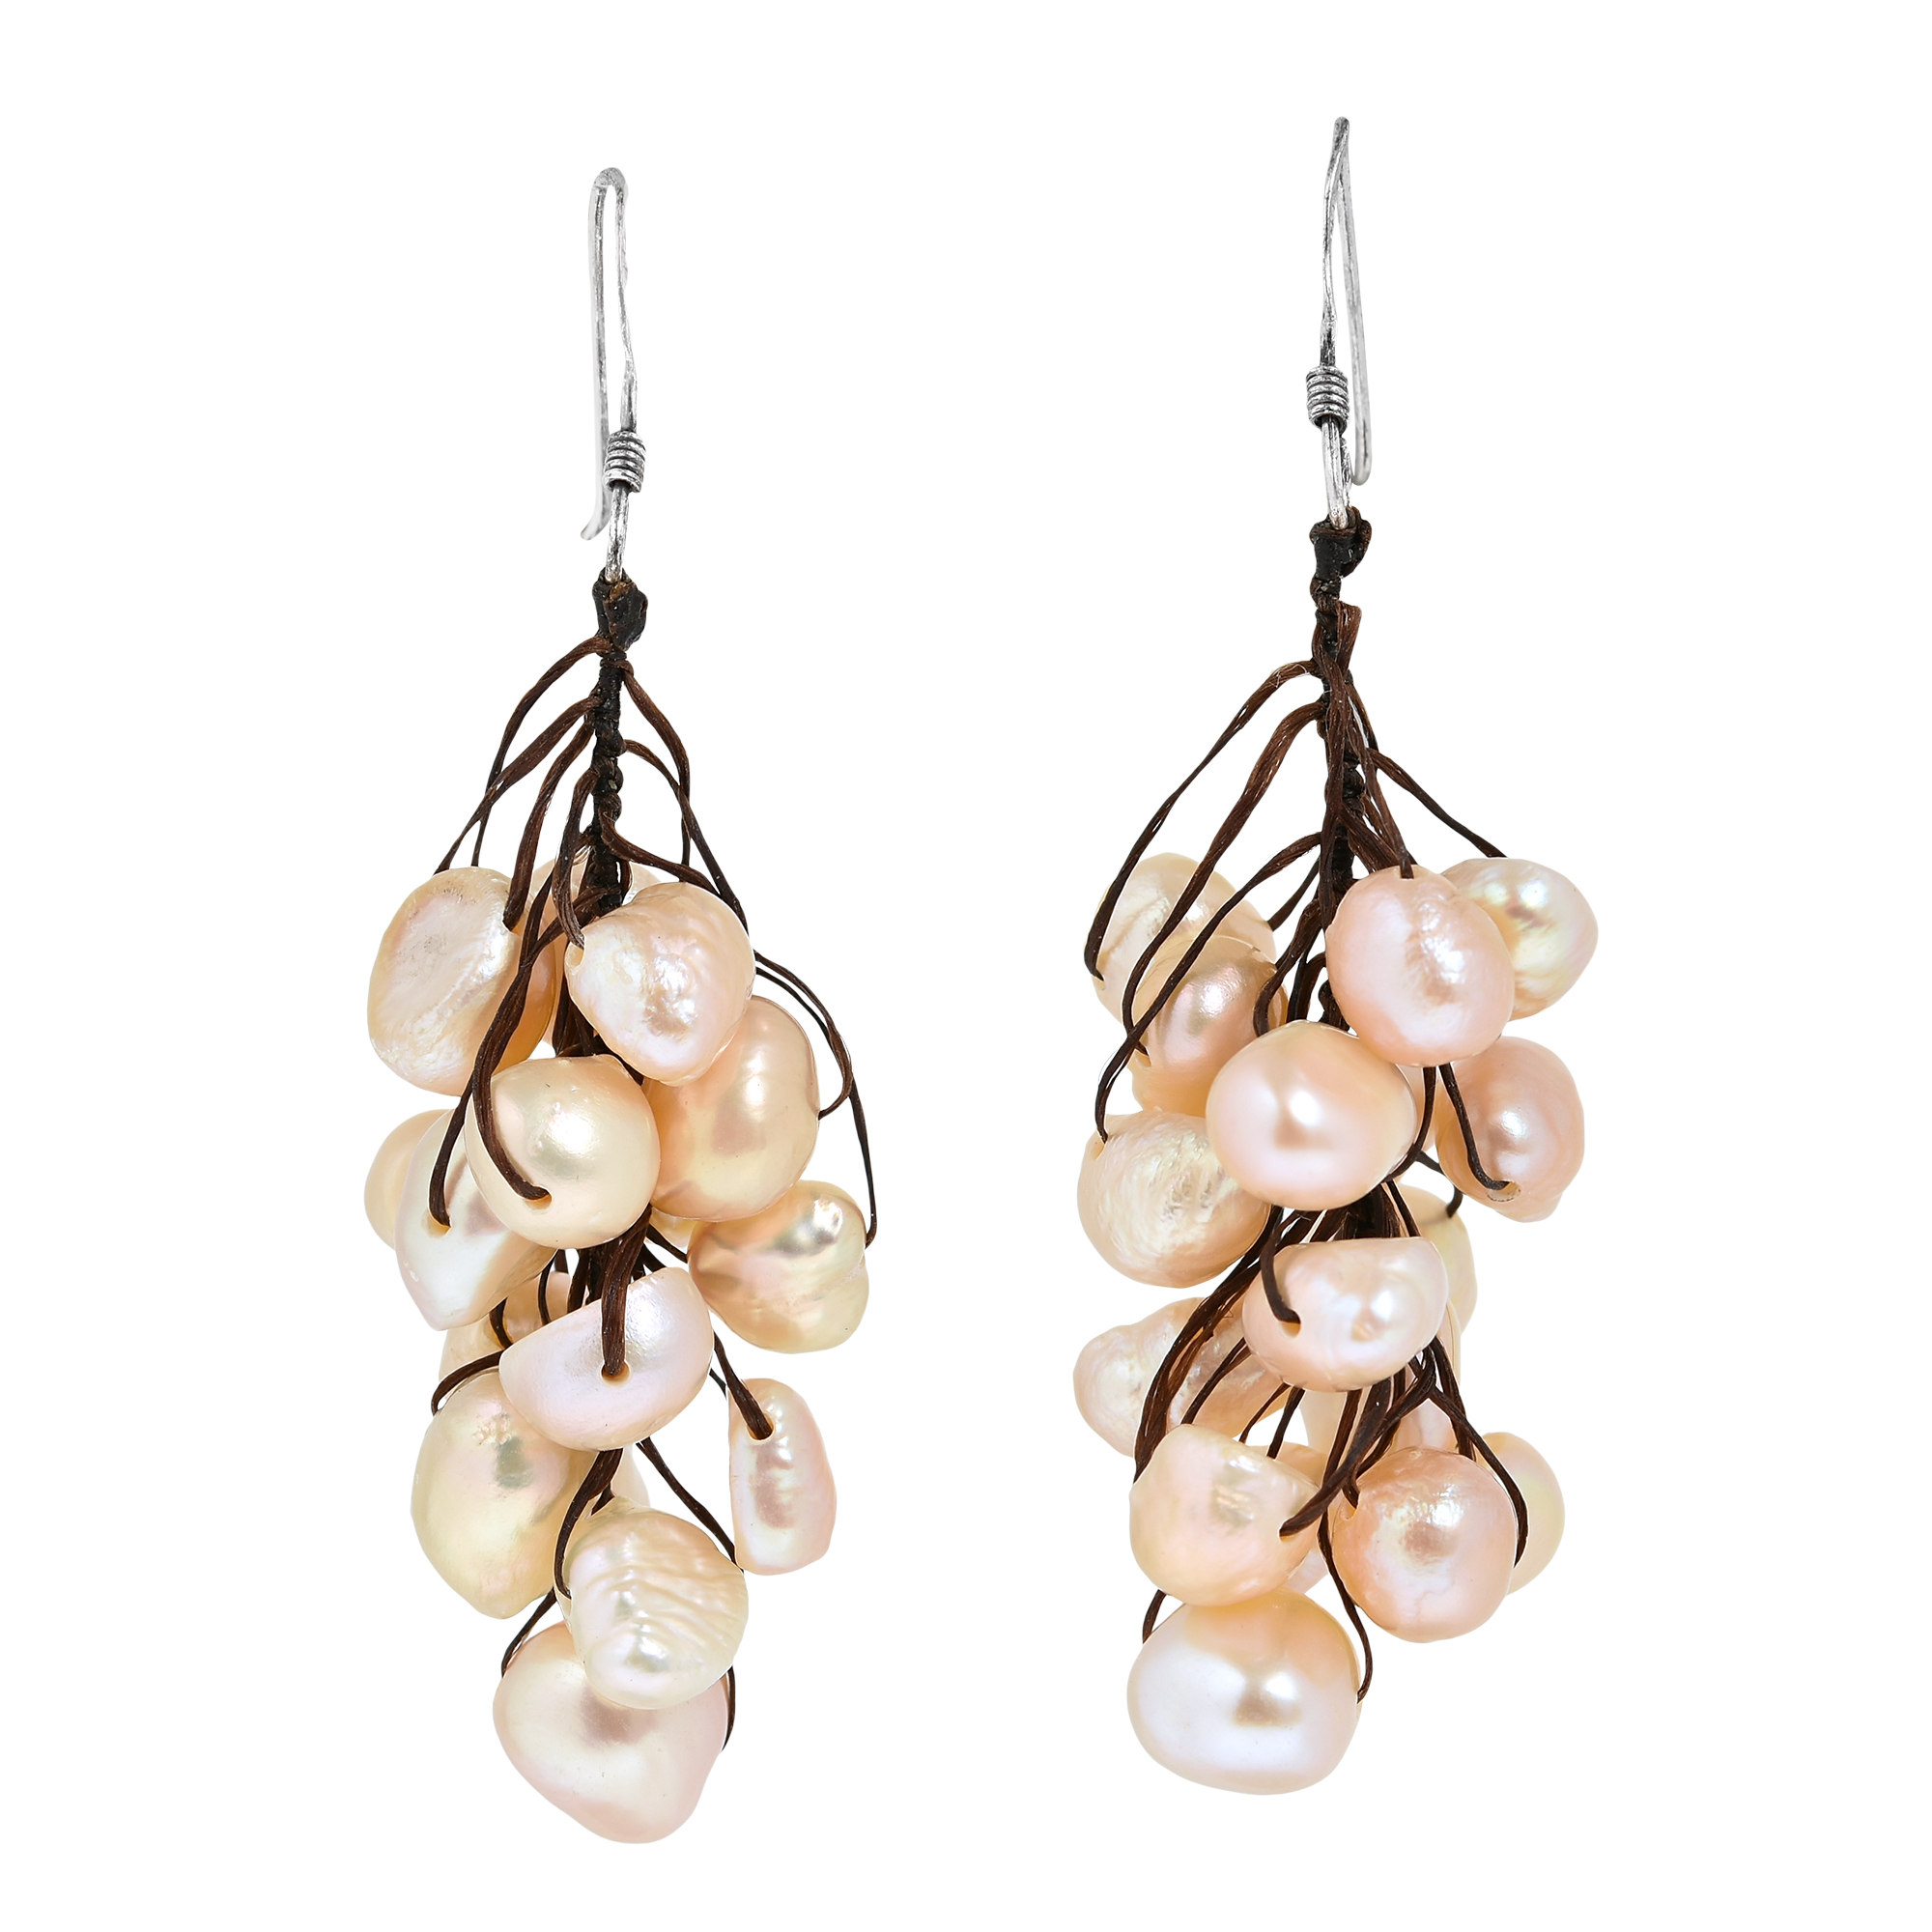 A Beautiful Cer Of Freshwater Pearls Create This Amazing Pair Dangle Earrings Resembling Bundle Ripe Gs On The Vine Each Individual Piece